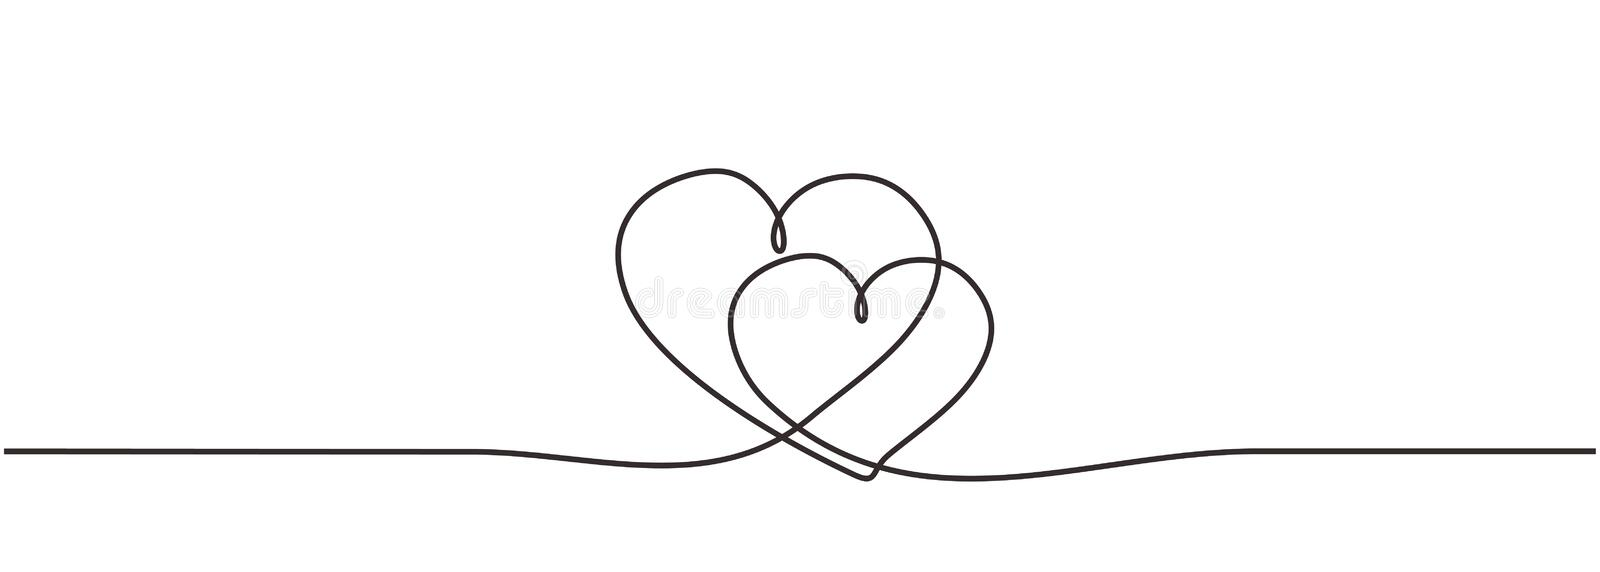 Love hearts sign continuous one line drawing. Single lineart hand drawn of romantic wedding invitation element vector illustration royalty free illustration